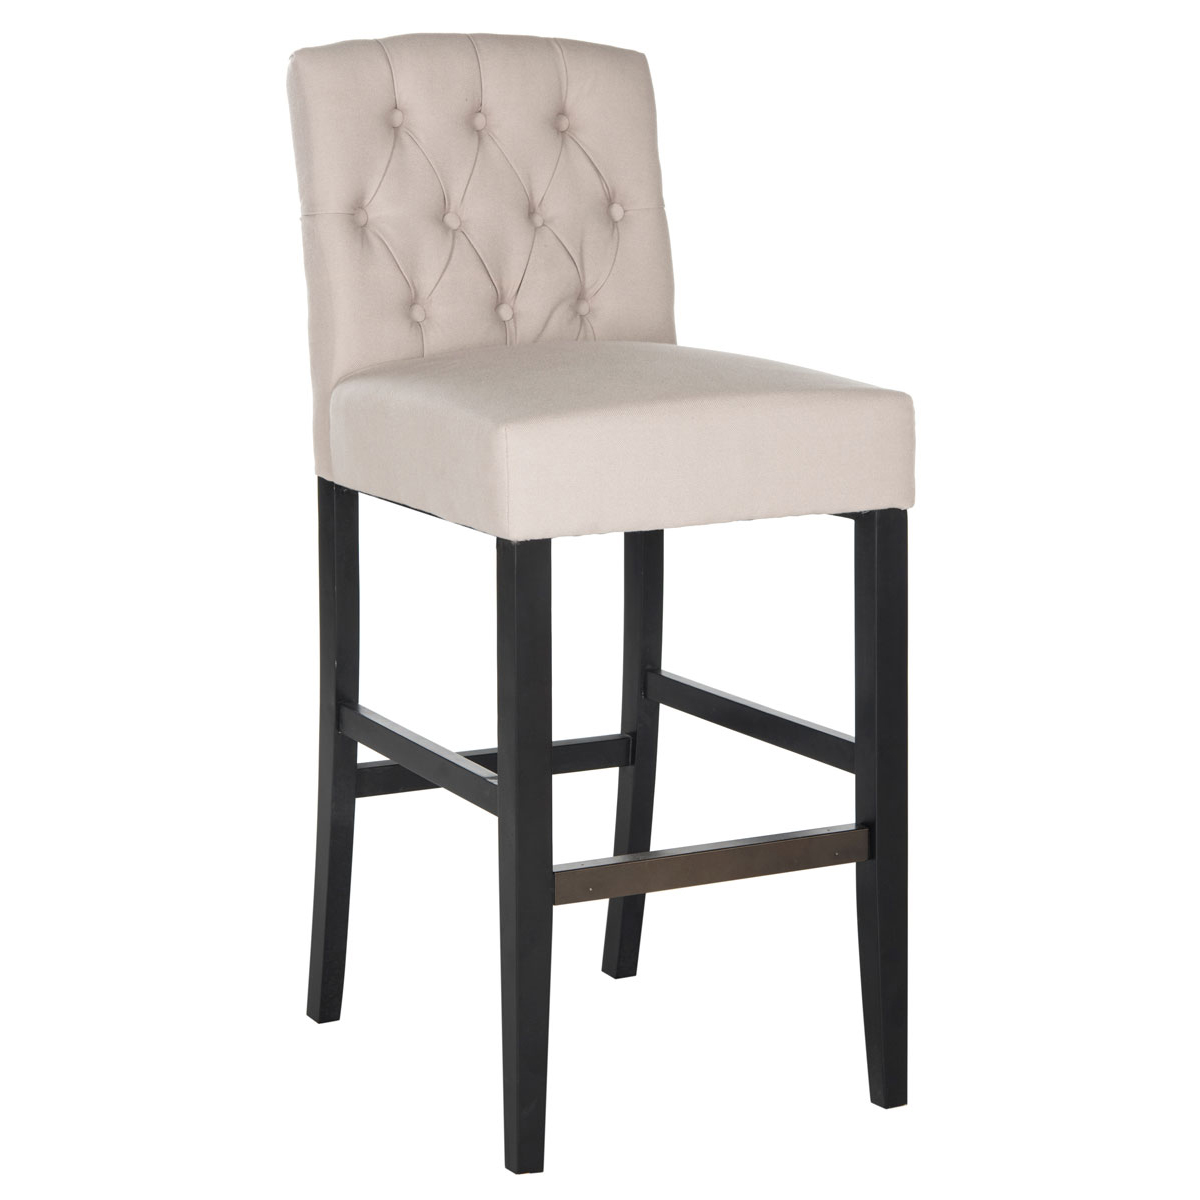 Maisie Tufted Bar Stool in Taupe